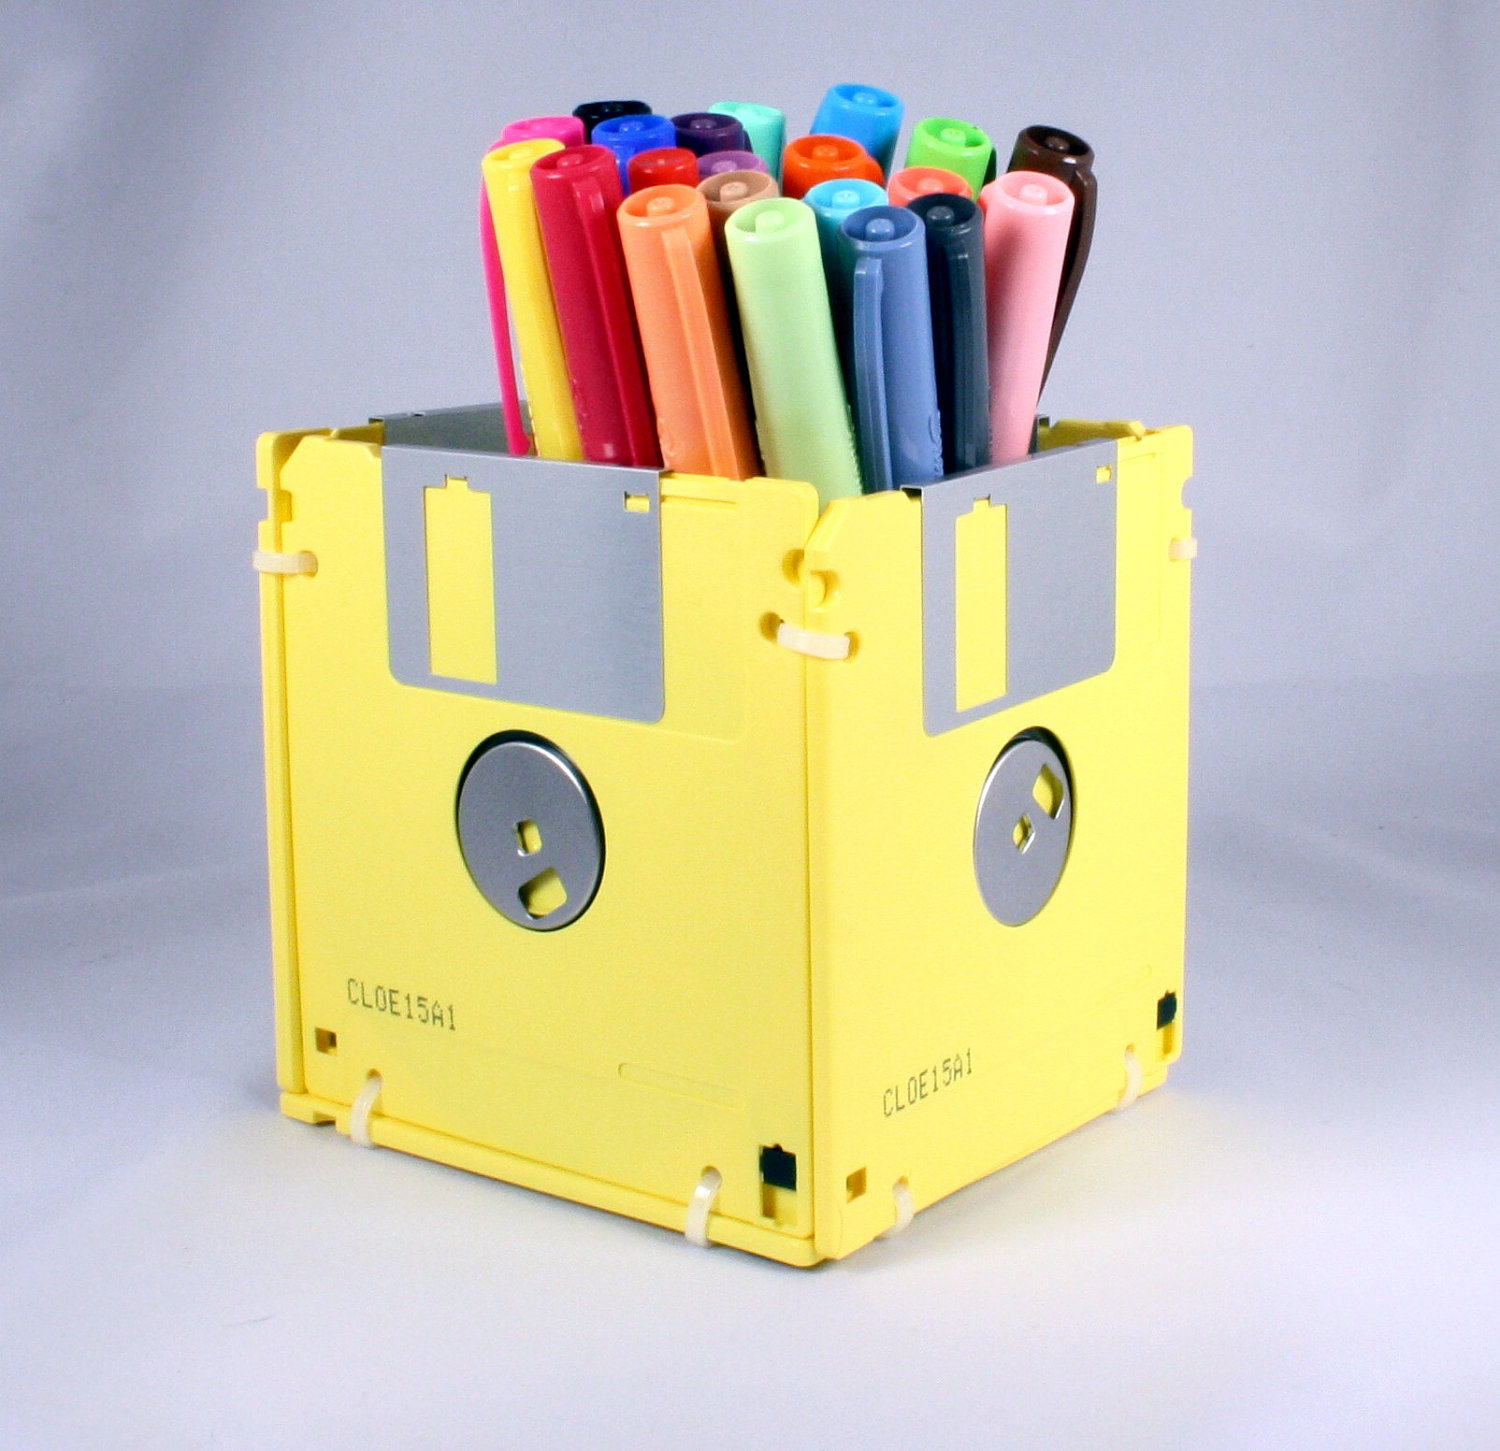 close up of a pencil case, made from several yellow floppy disks, art and craft ideas, markers or pens in different colors inside